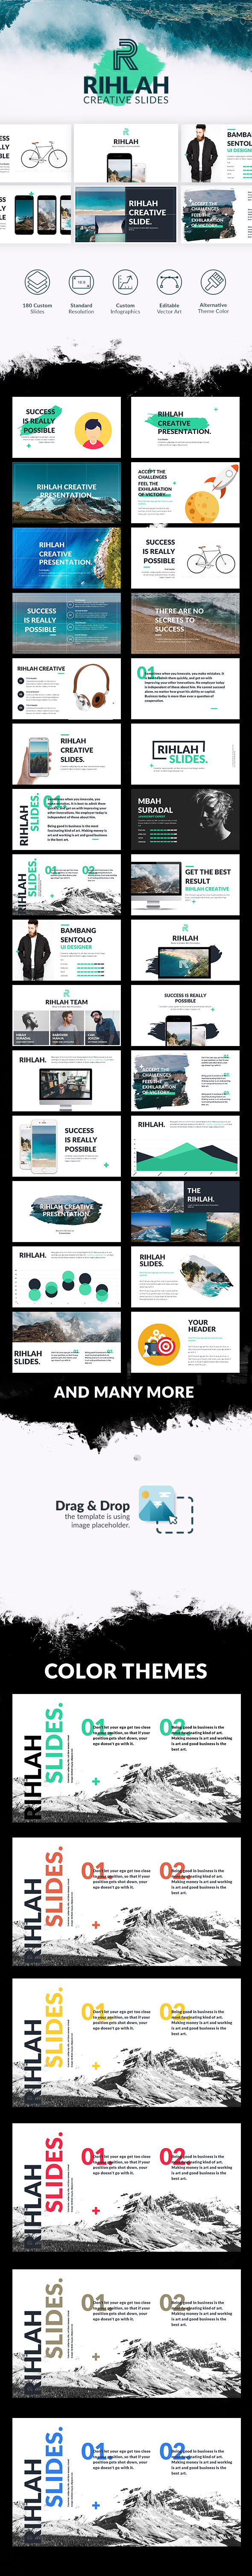 Rihlah Creative Powerpoint - Creative PowerPoint Templates